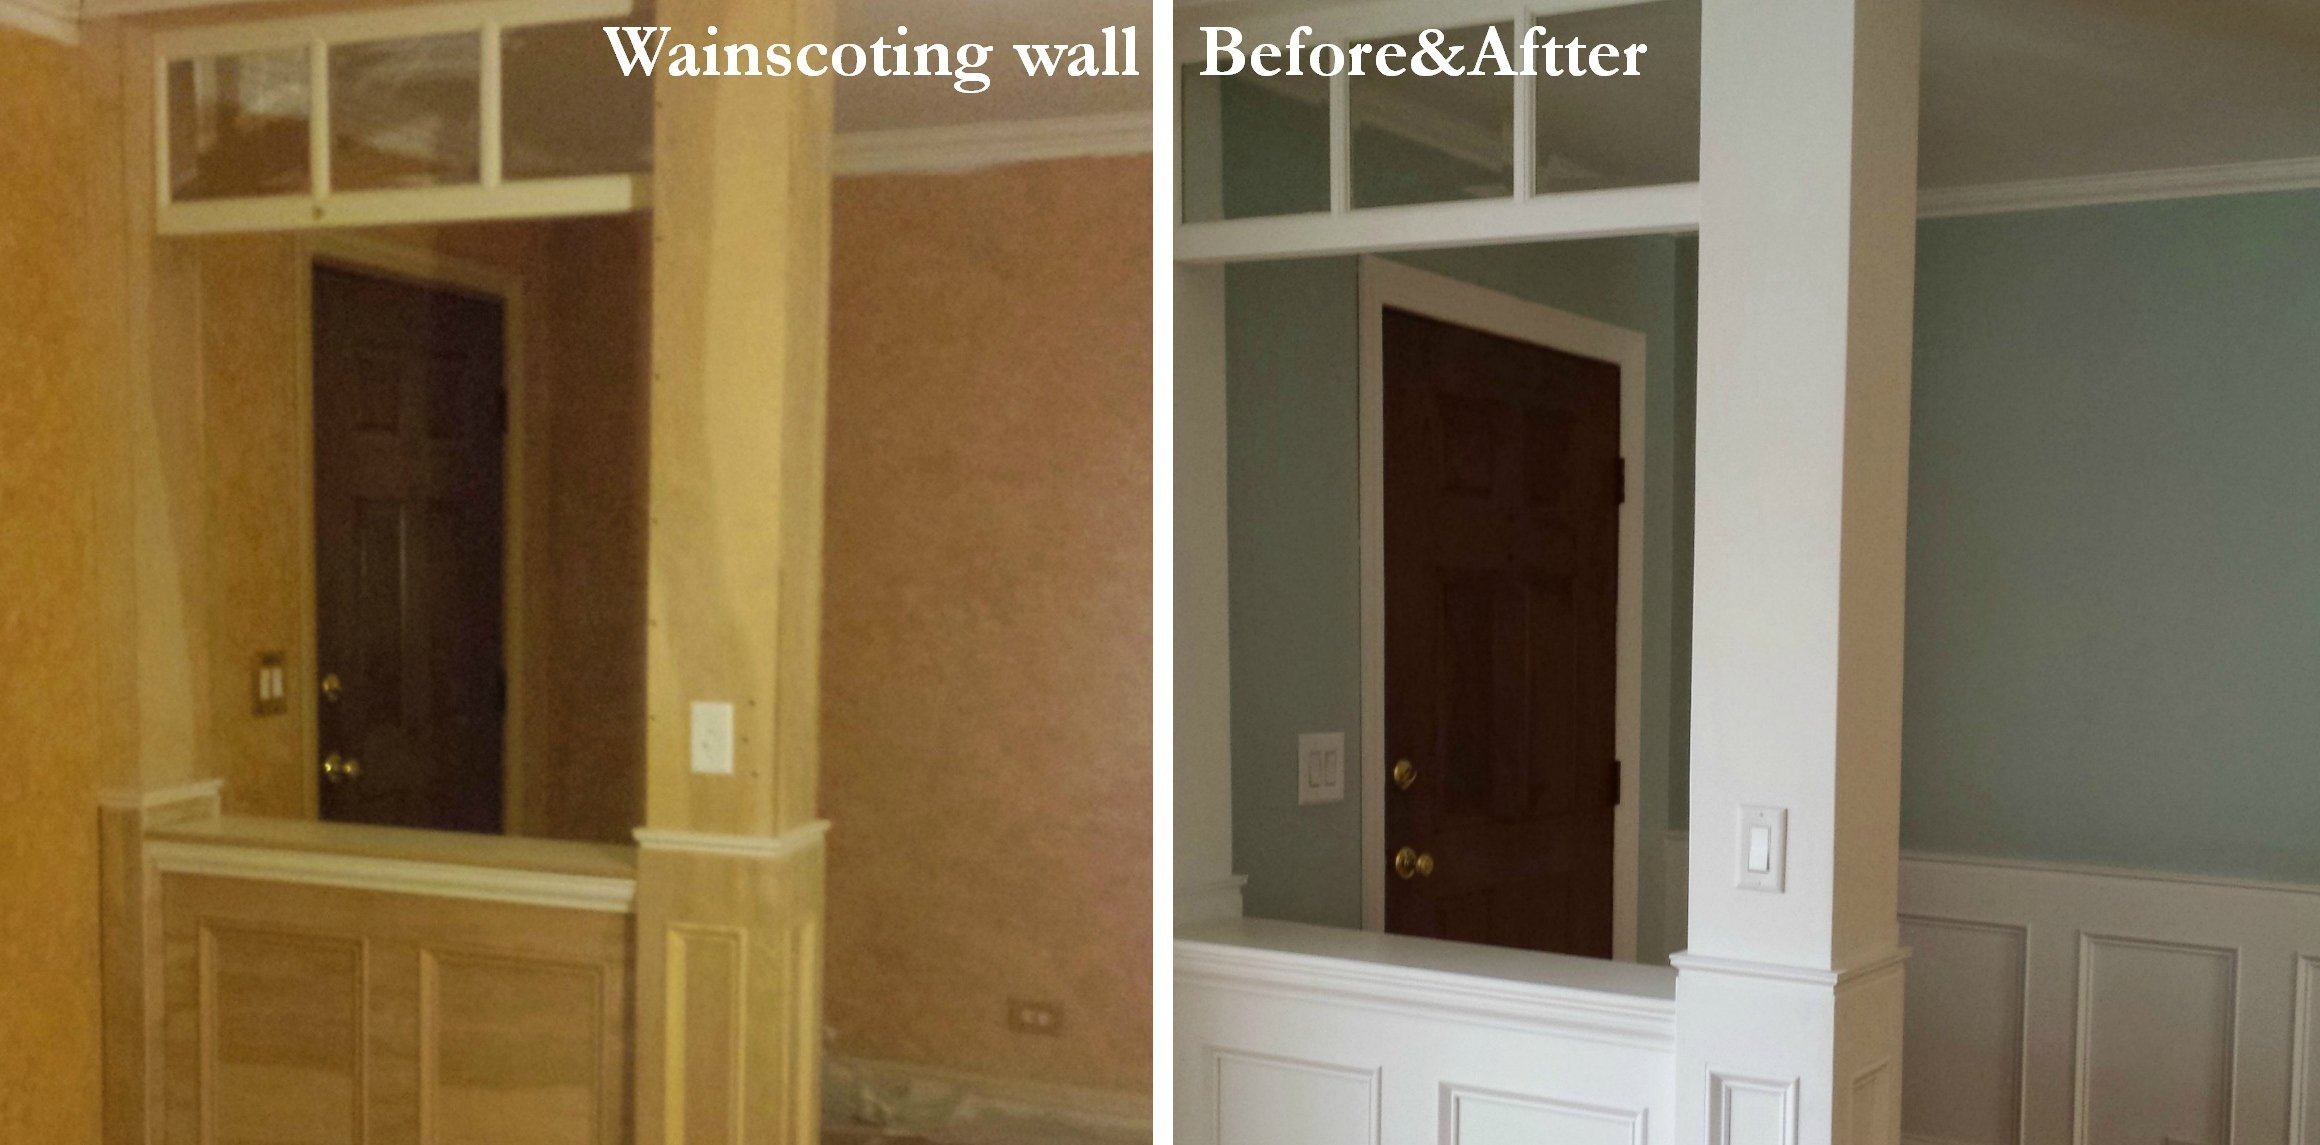 Wainscoting wall Before and After - Housekaboodle